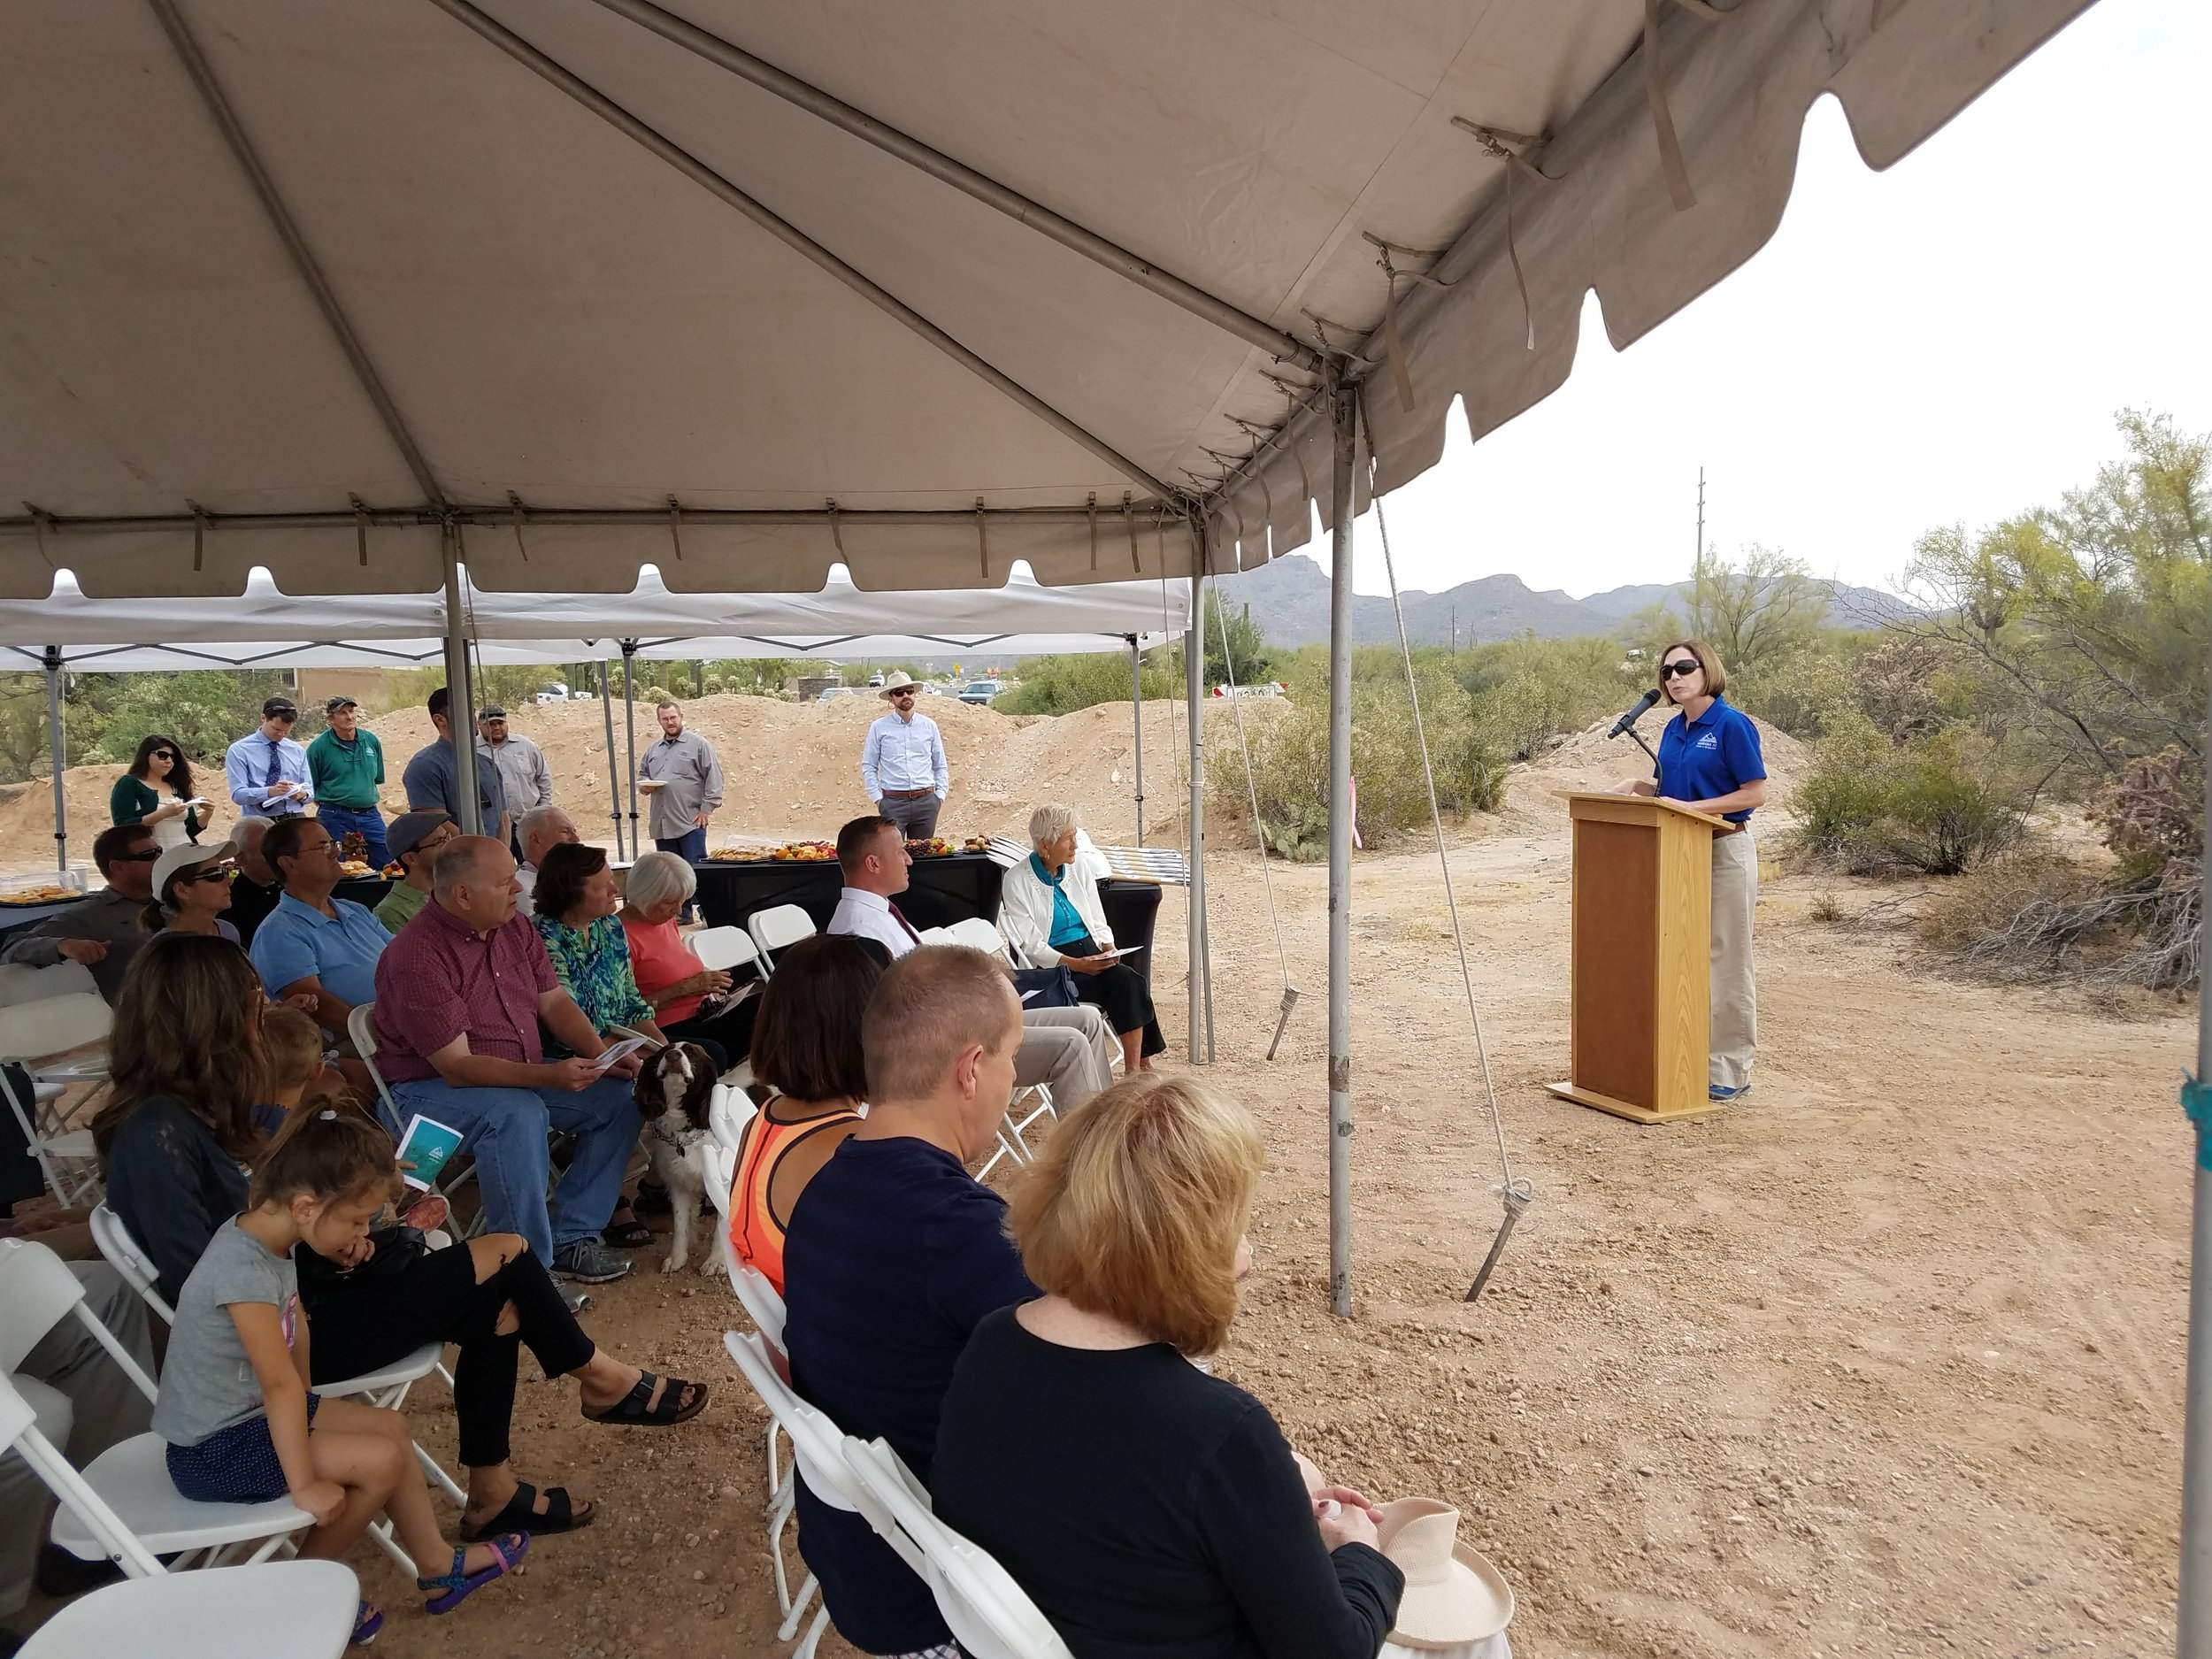 Parks and Recreation Director Cynthia Nemeth-Briehn describes the planning process for the new Tangerine Sky Park